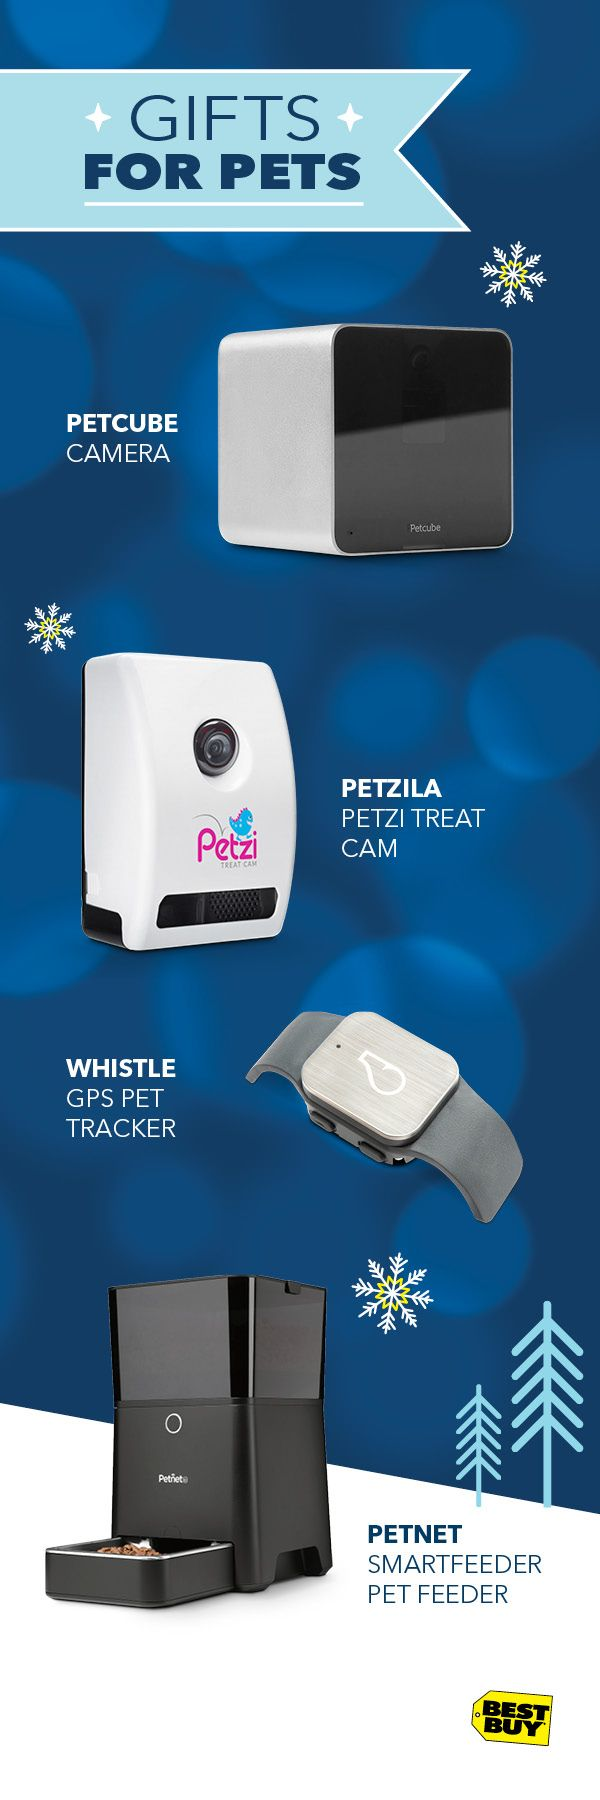 Furry friends love tech too. The Petcube Camera lets you easily monitor your pets from anywhere. With the Petzi Treat Cam you can see, speak, and even treat your pets right from your phone. Or track your pet the smart way with the Whistle Pet Tracker. And the Petnet Smartfeeder handles feeding time while you're away. Plus free shipping is the cat's meow.